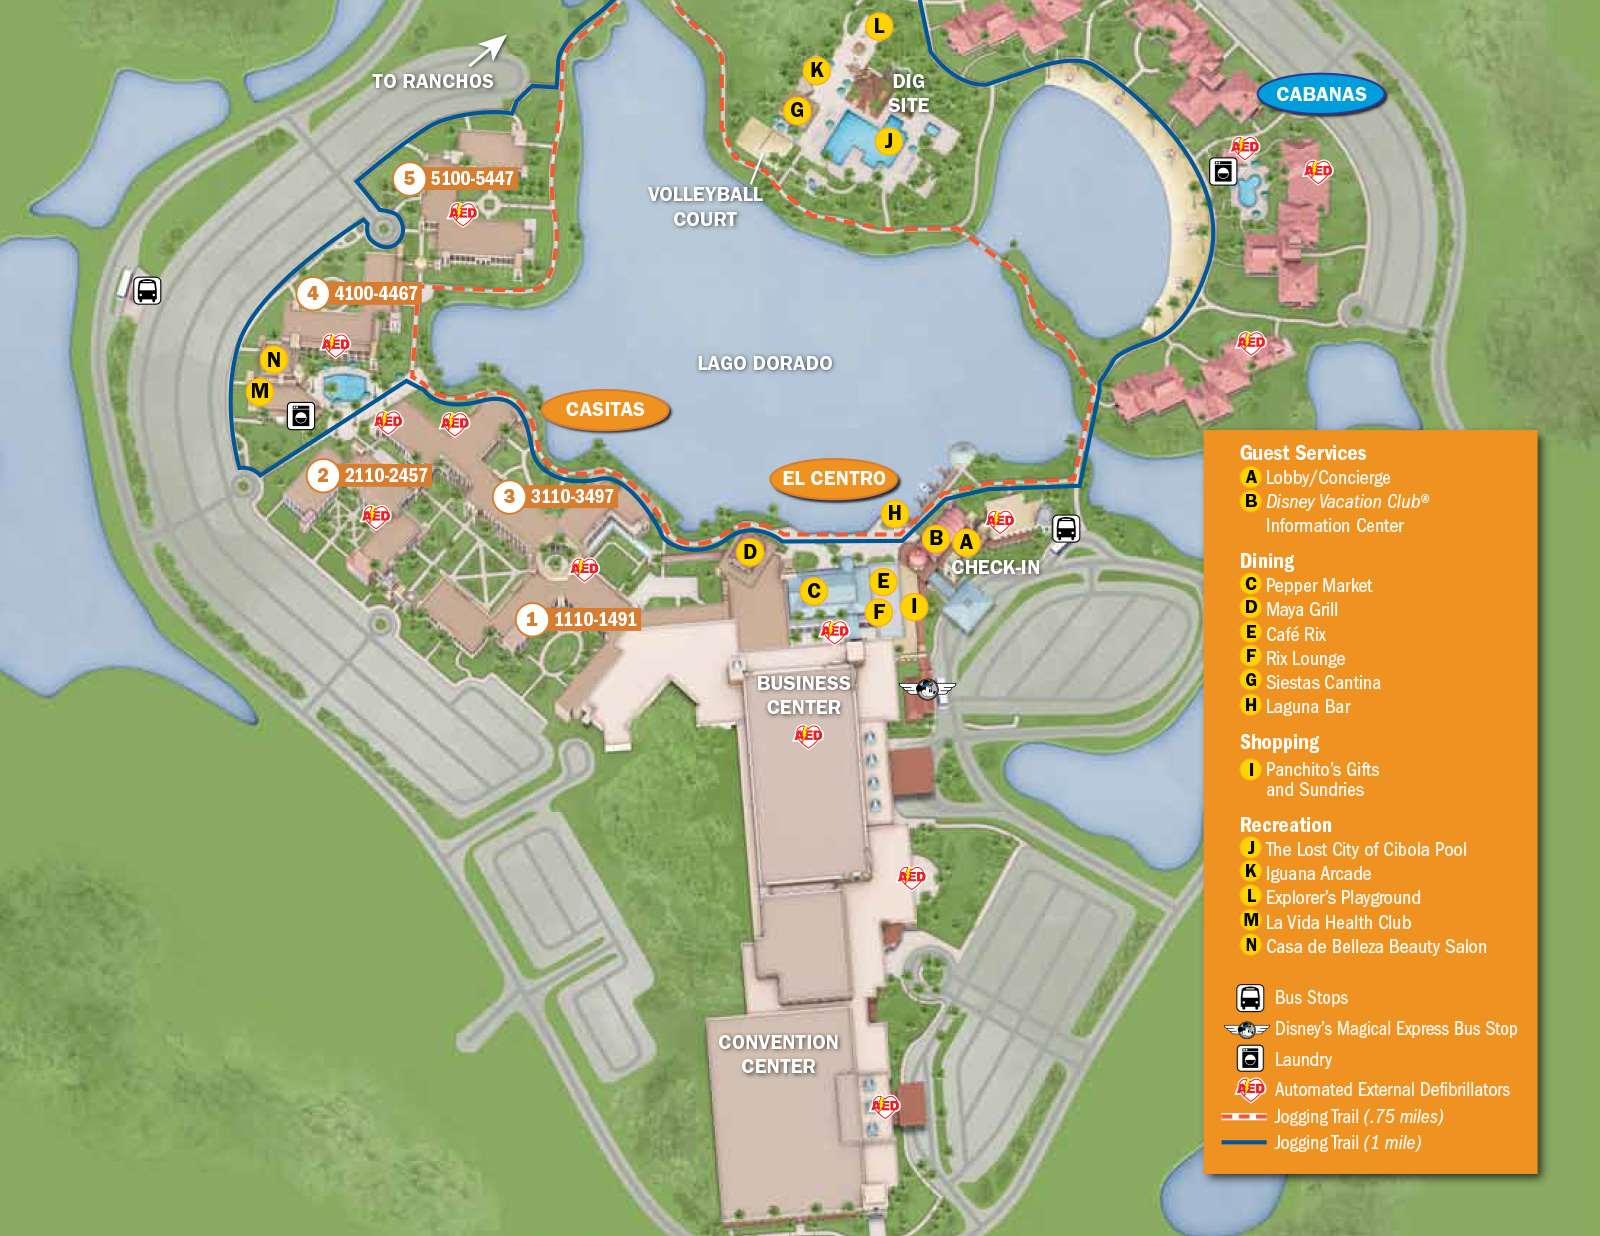 PHOTOS - New design of maps now at Walt Disney World resort hotels